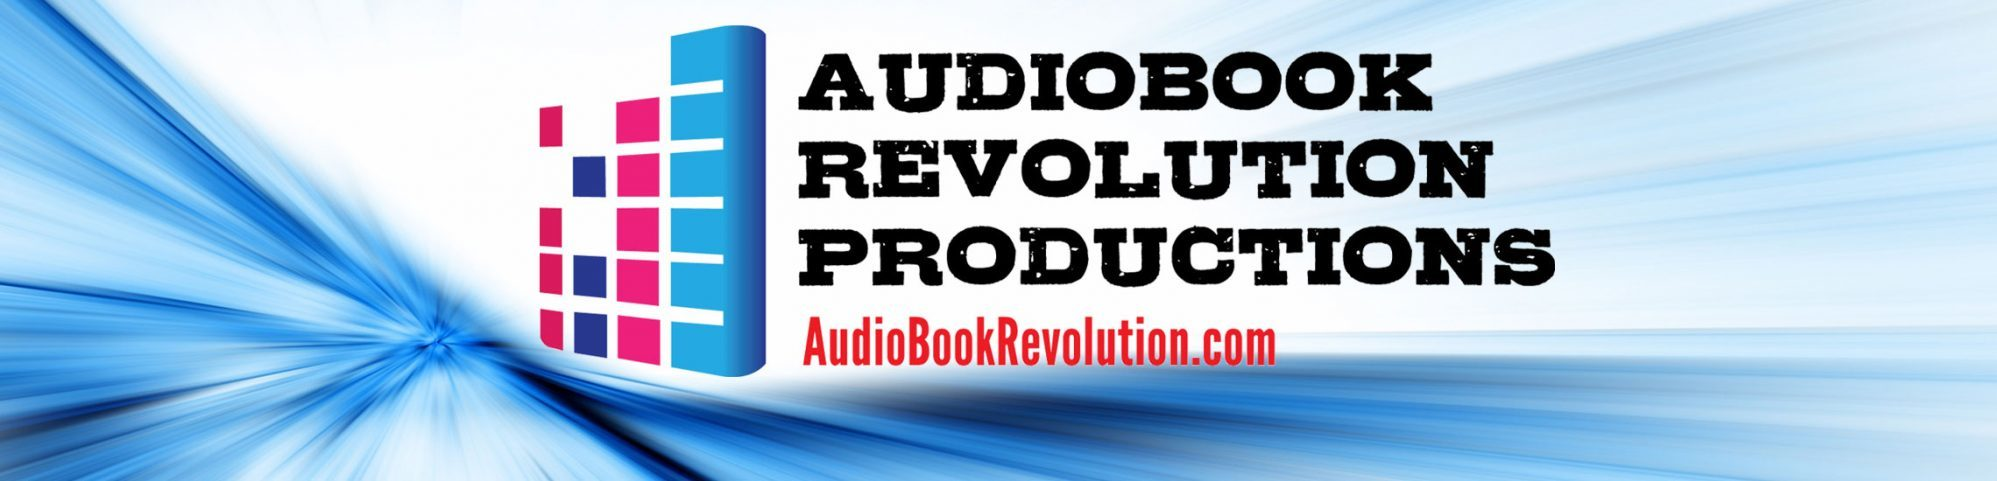 Audiobook Revolution Productions